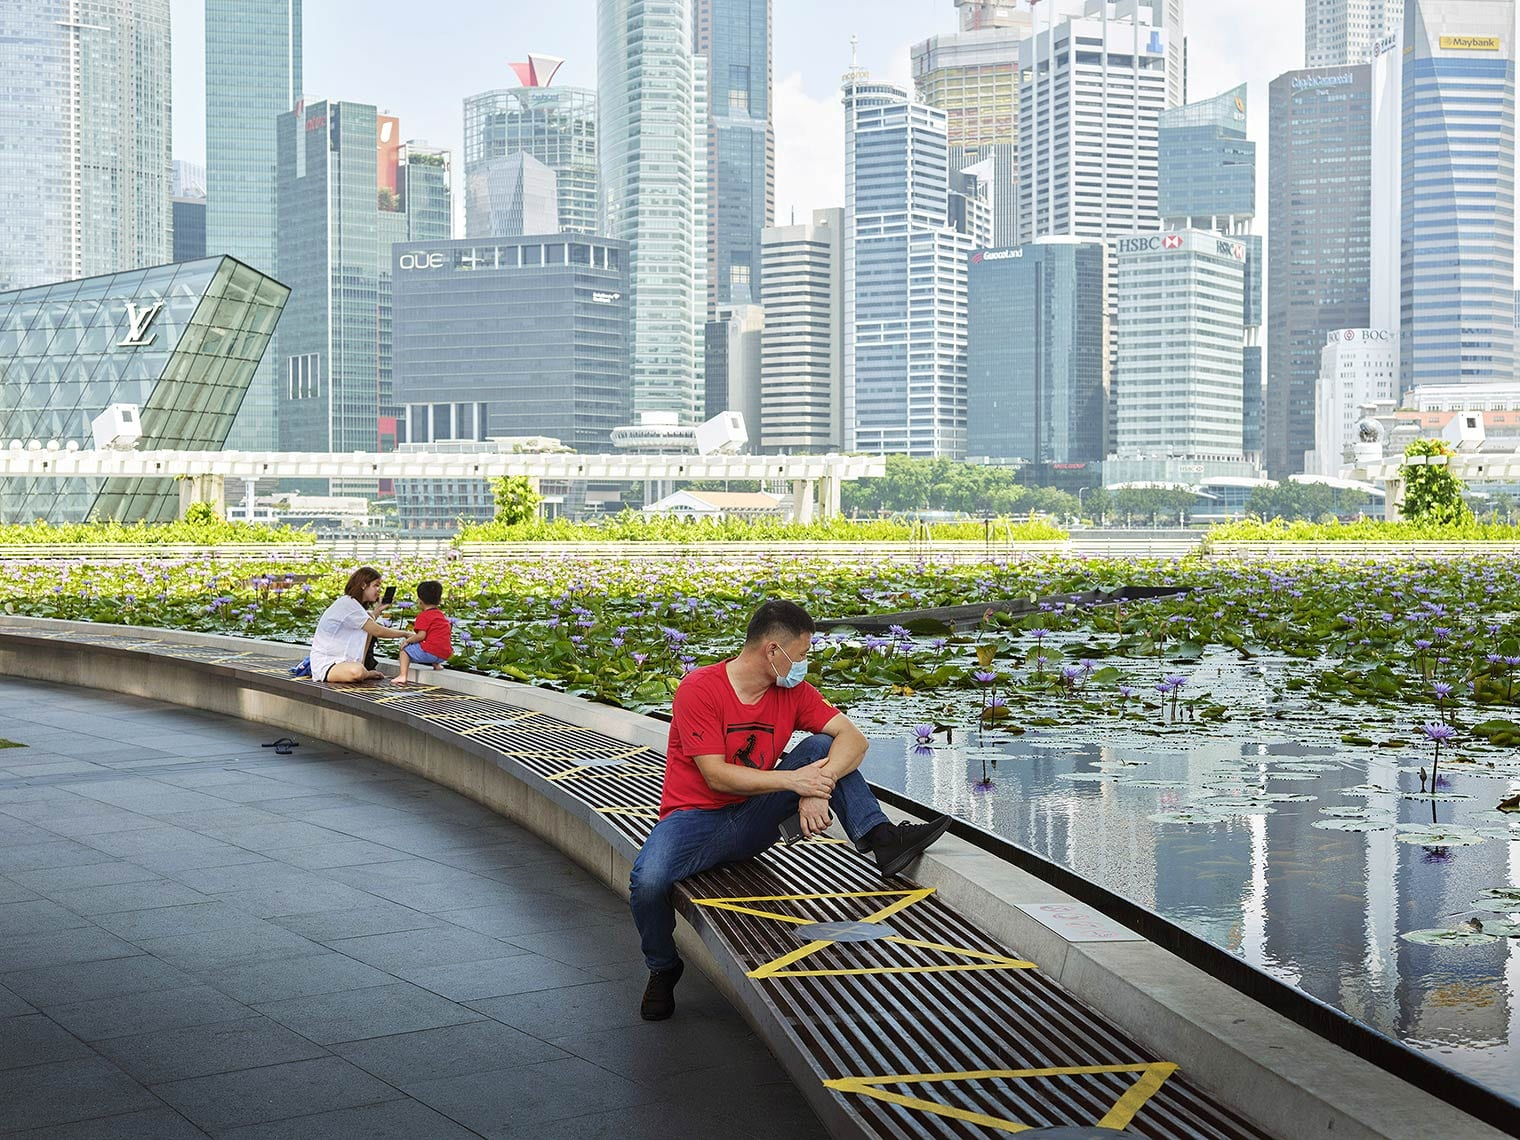 A person wearing a surgical mask sits on a bench by a lily pond in front of Singapore's skyline